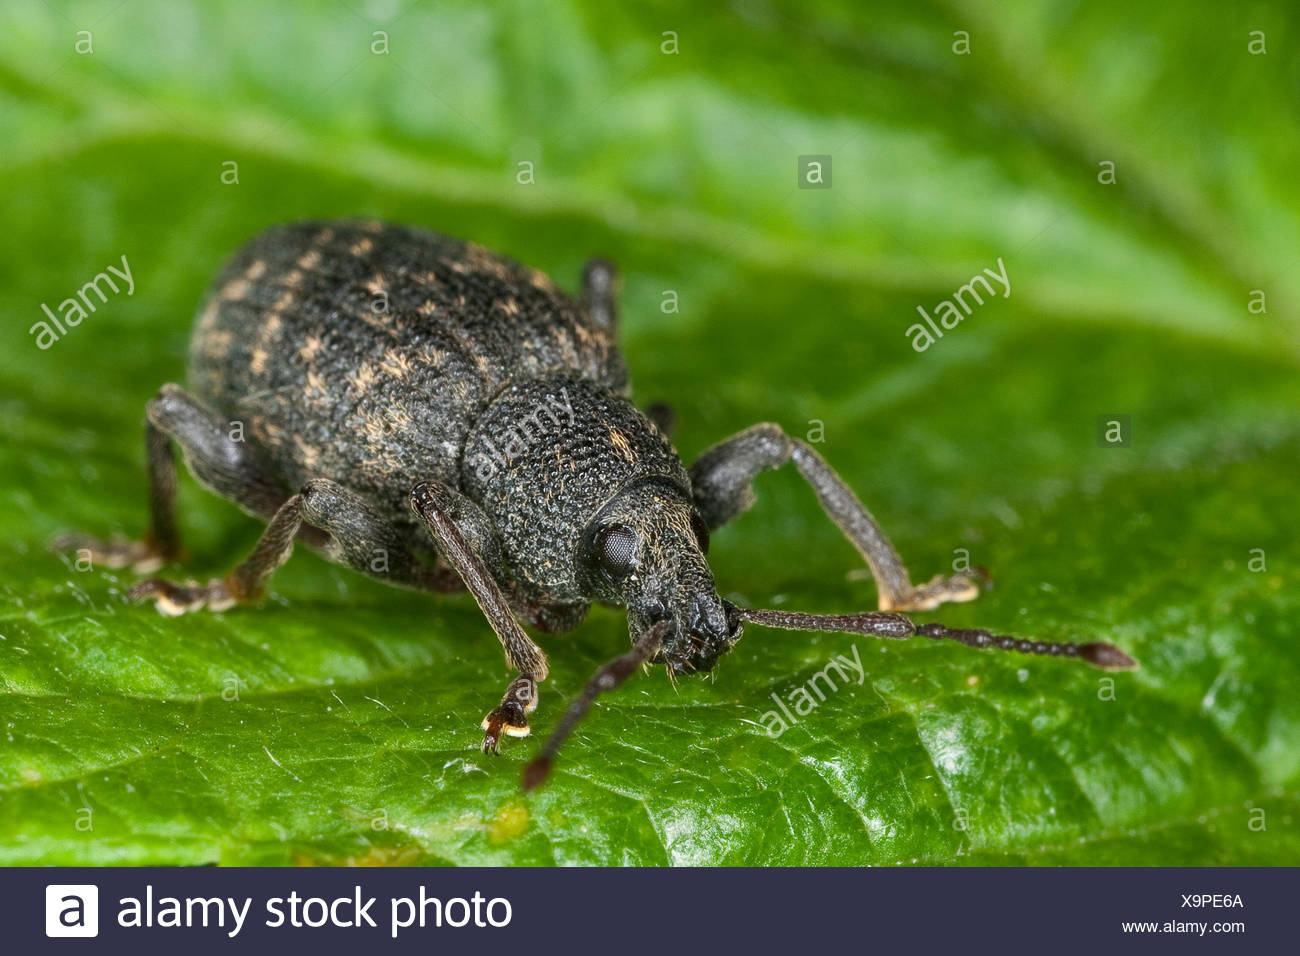 Cine weevil, Black vine weevil, European vine weevil (Otiorhynchus sulcatus, Brachyrhinus sulcatus), sitting on a leaf, Germany - Stock Image